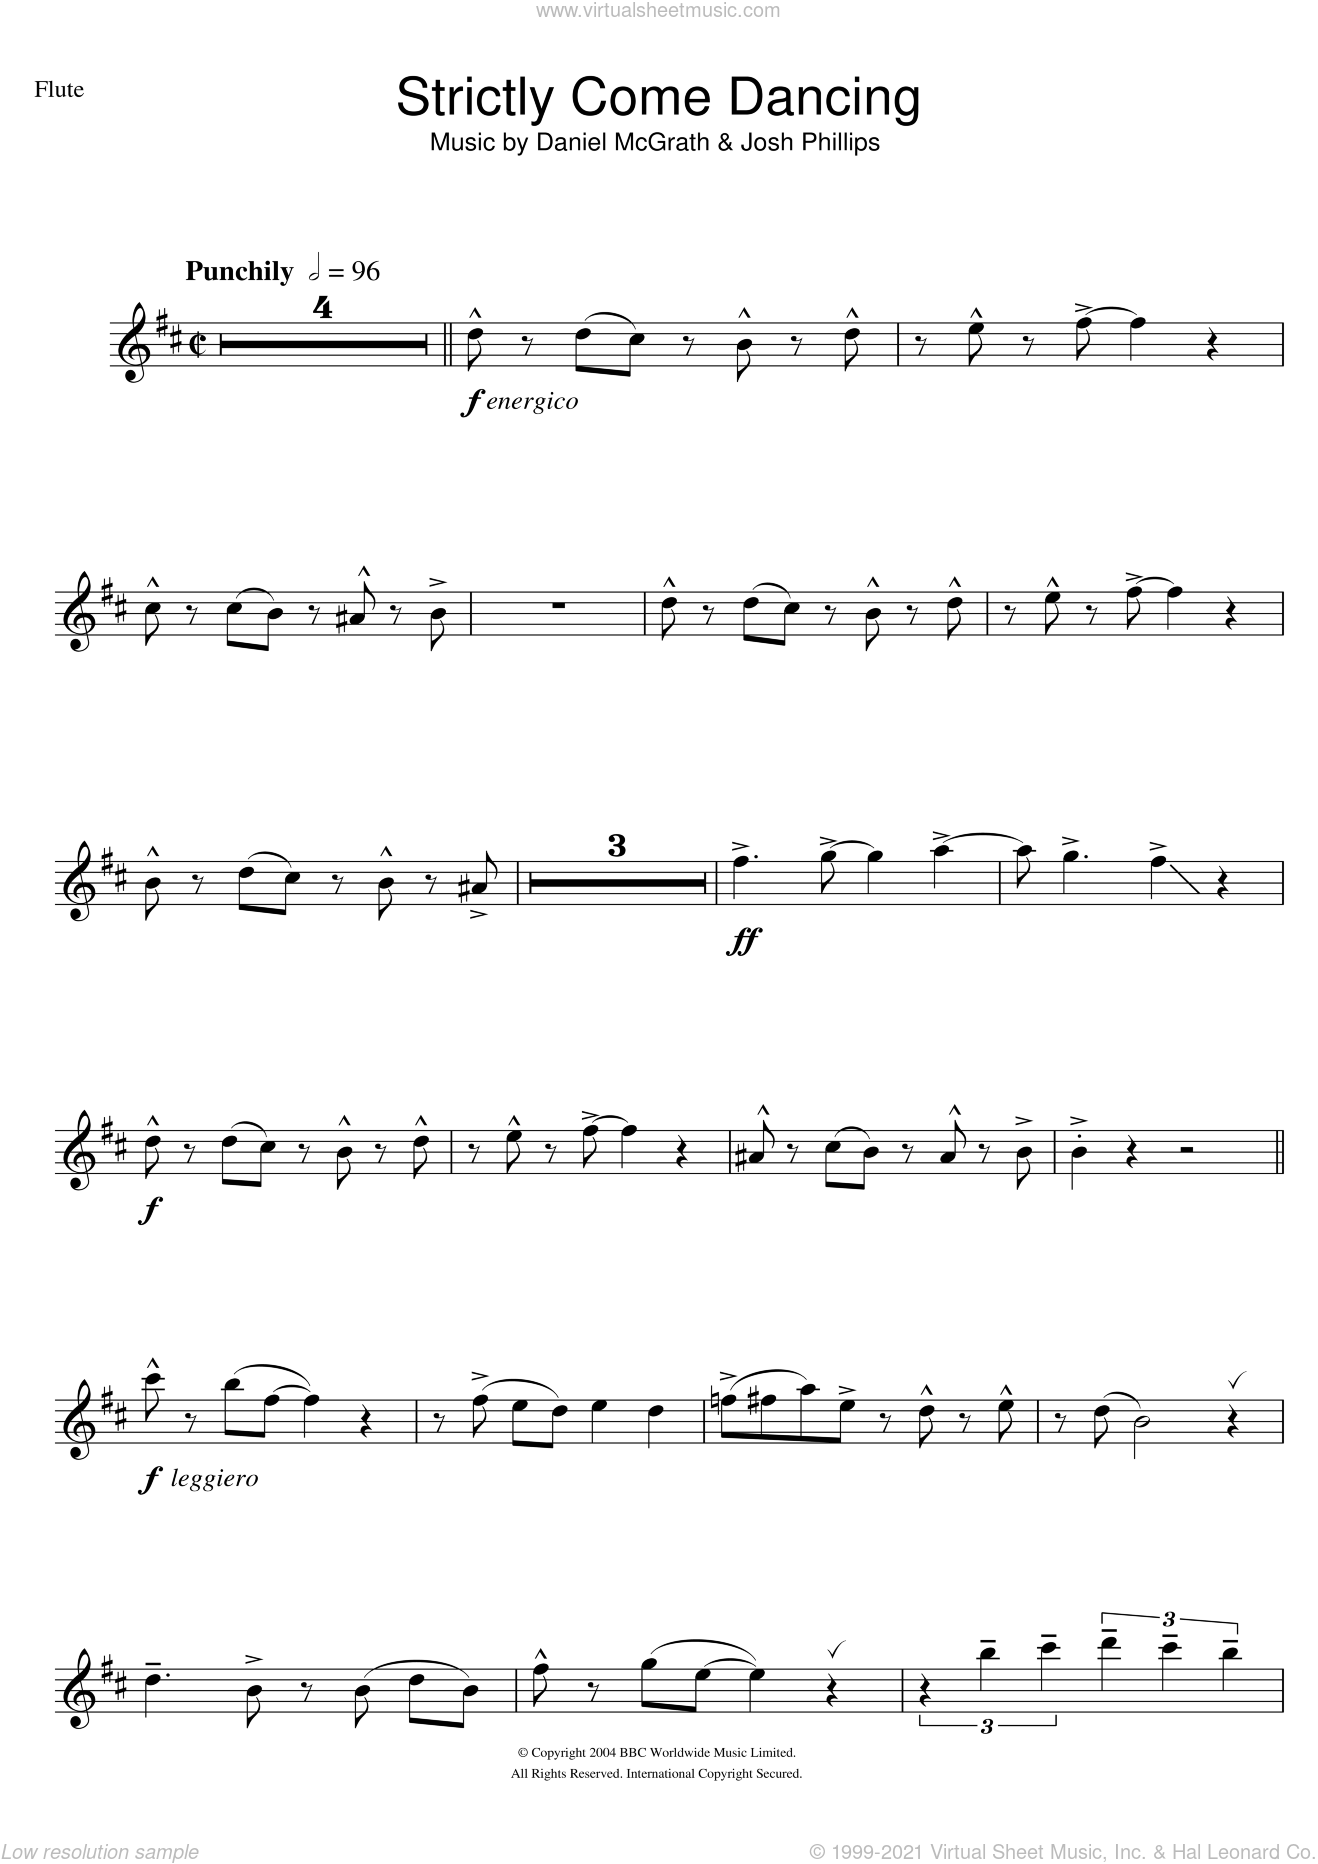 Strictly Come Dancing sheet music for flute solo by Daniel McGrath. Score Image Preview.